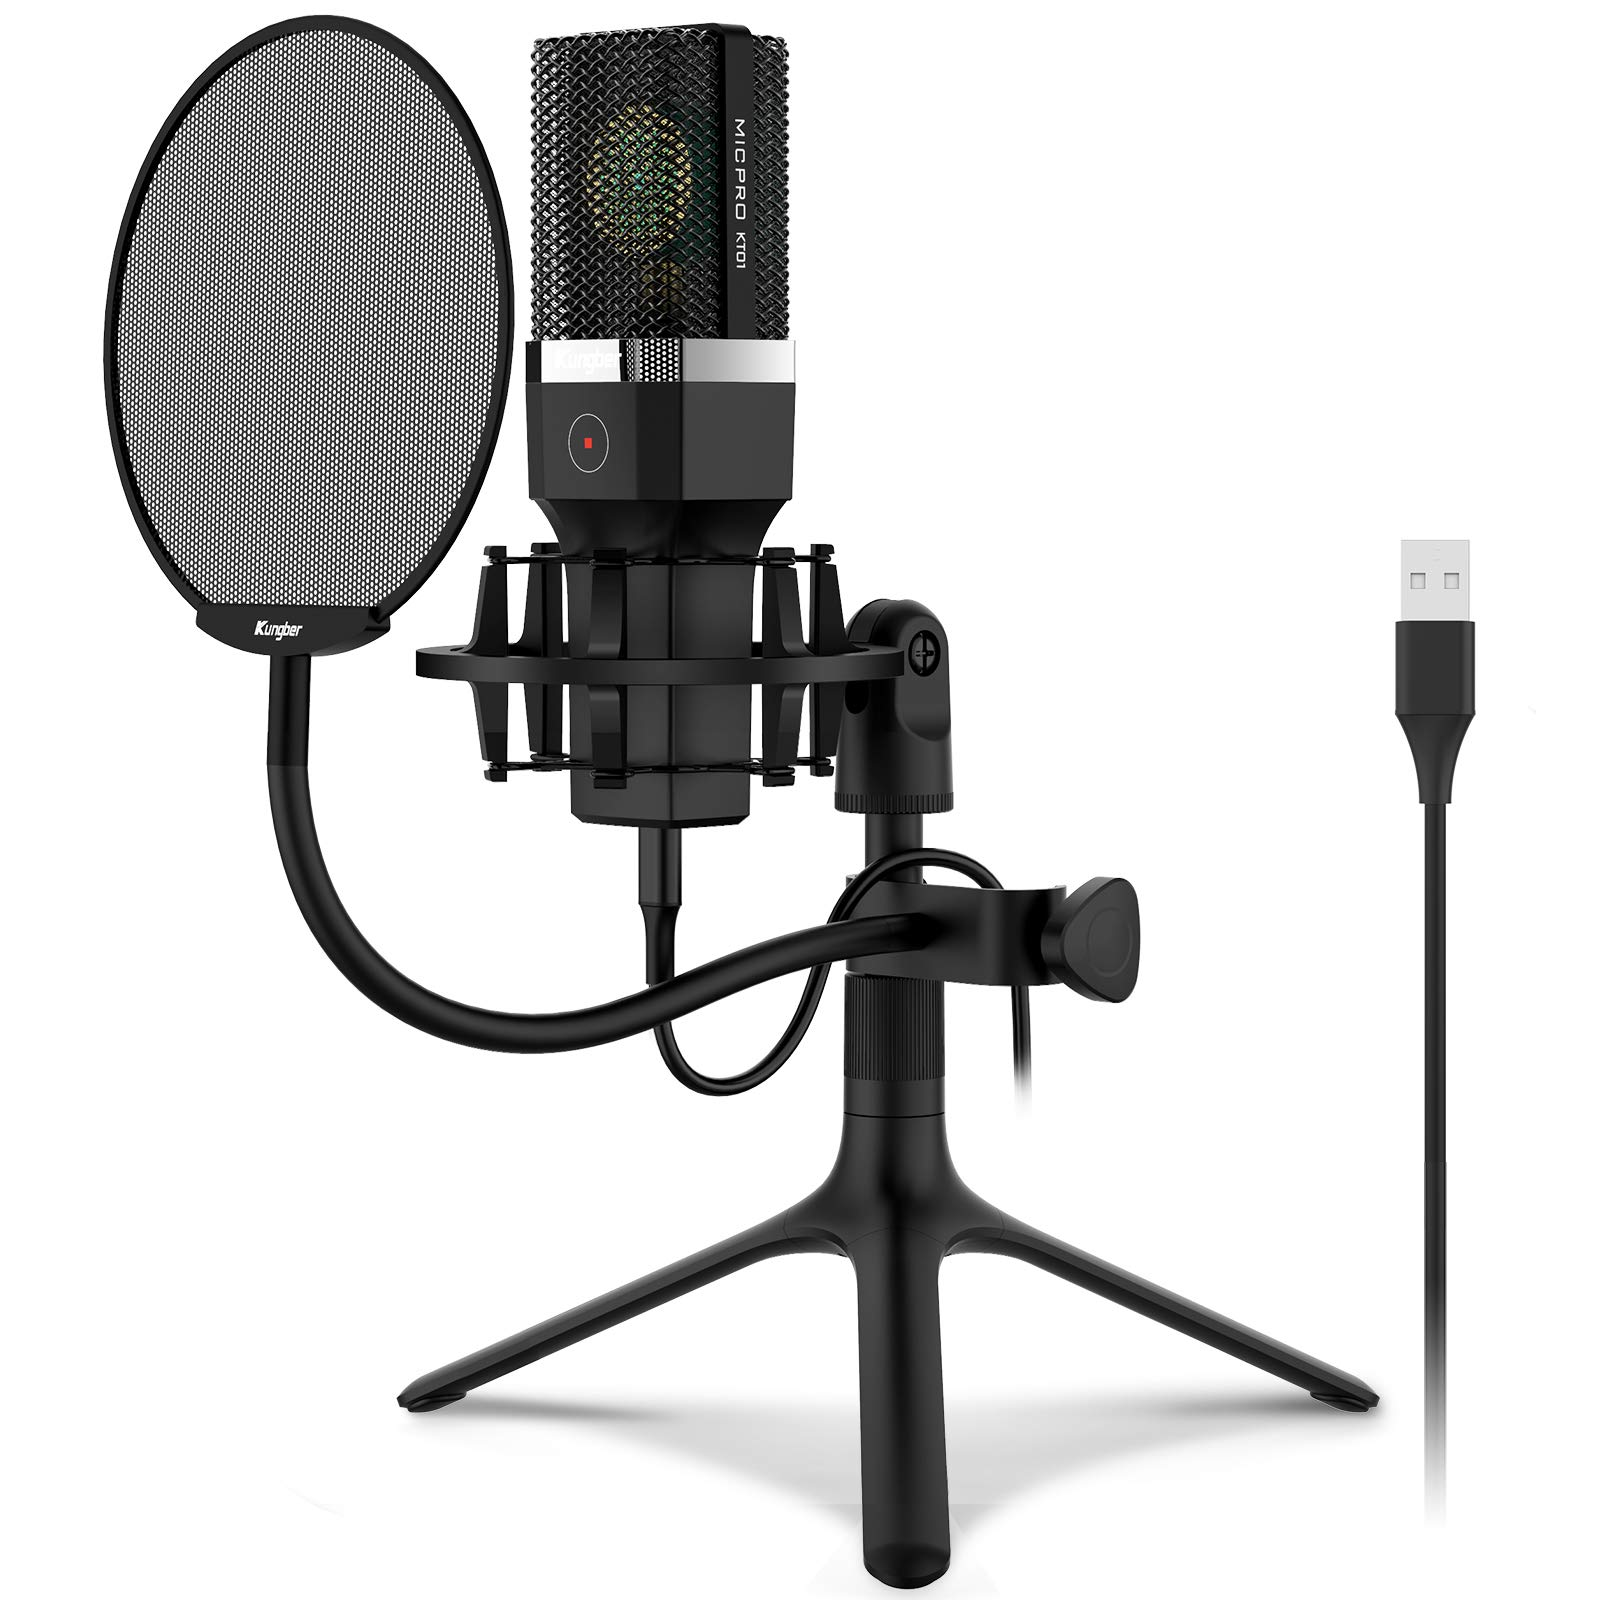 USB Microphone Kungber Condenser Computer PC Mic with Adjustable All Metal Tripod